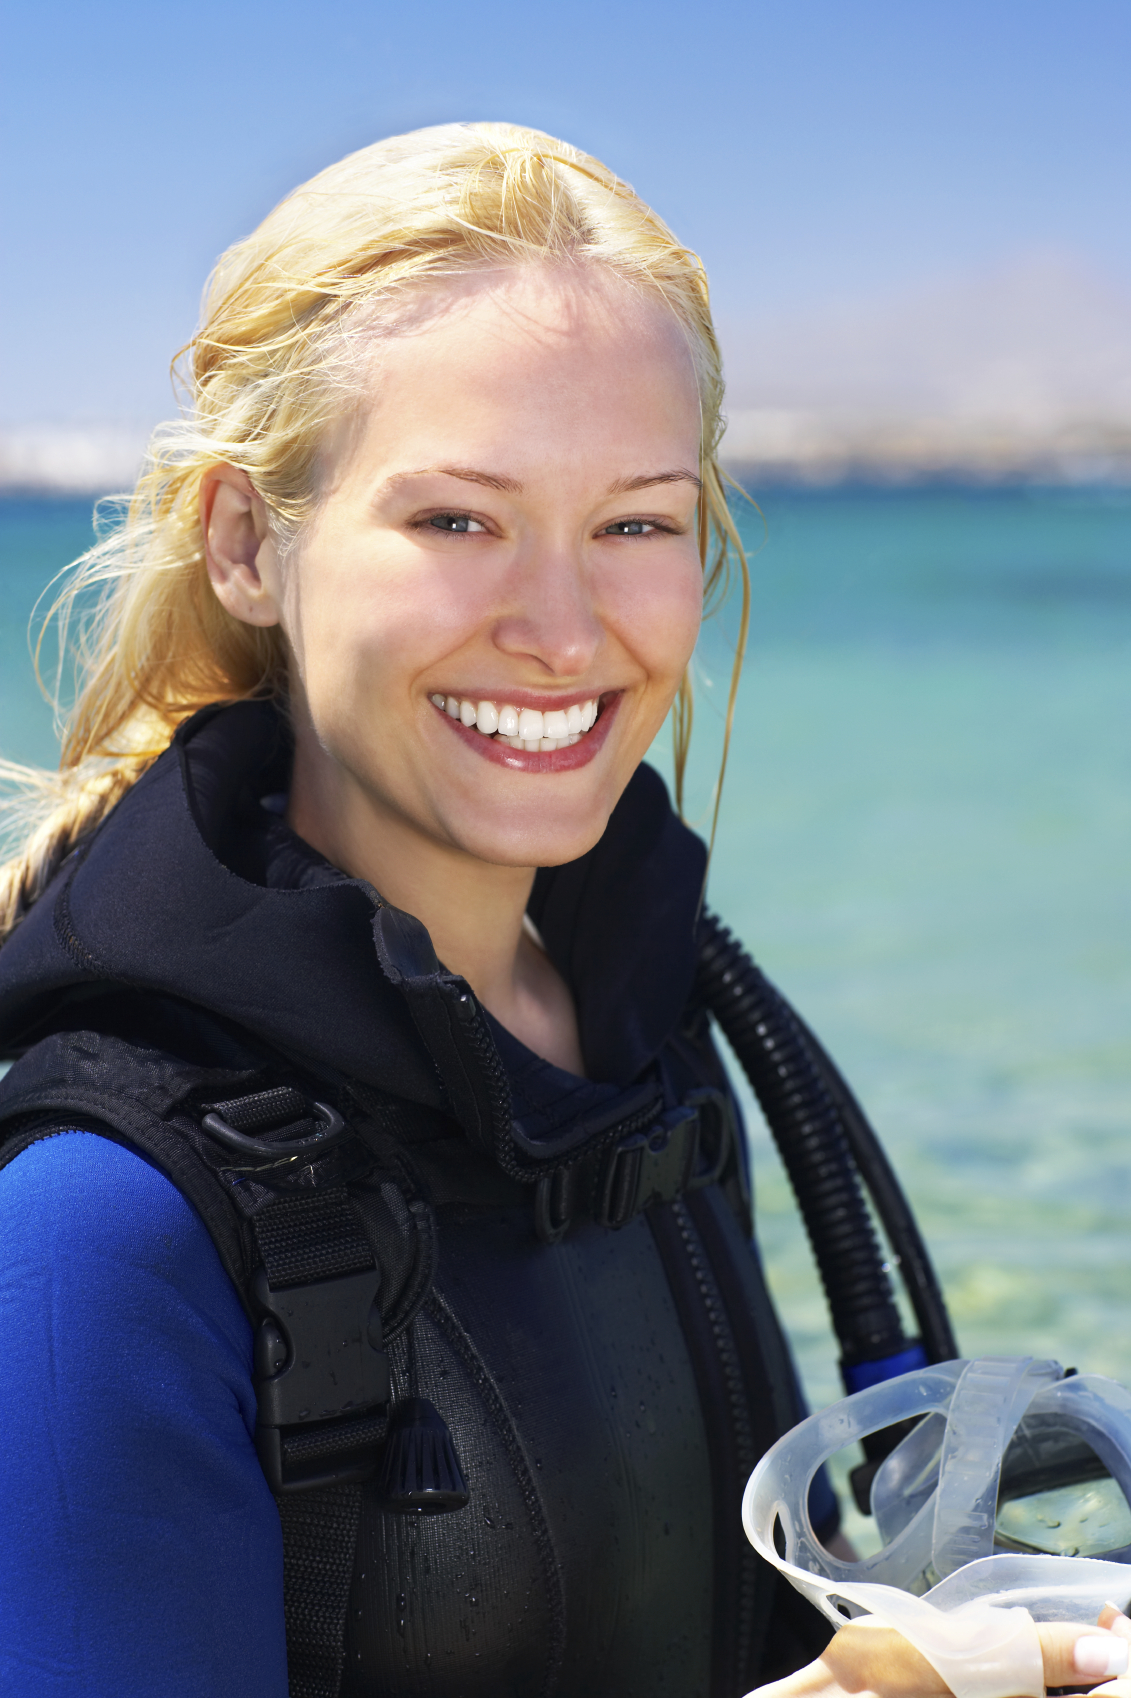 scuba diving and pregnancy  is another study justified